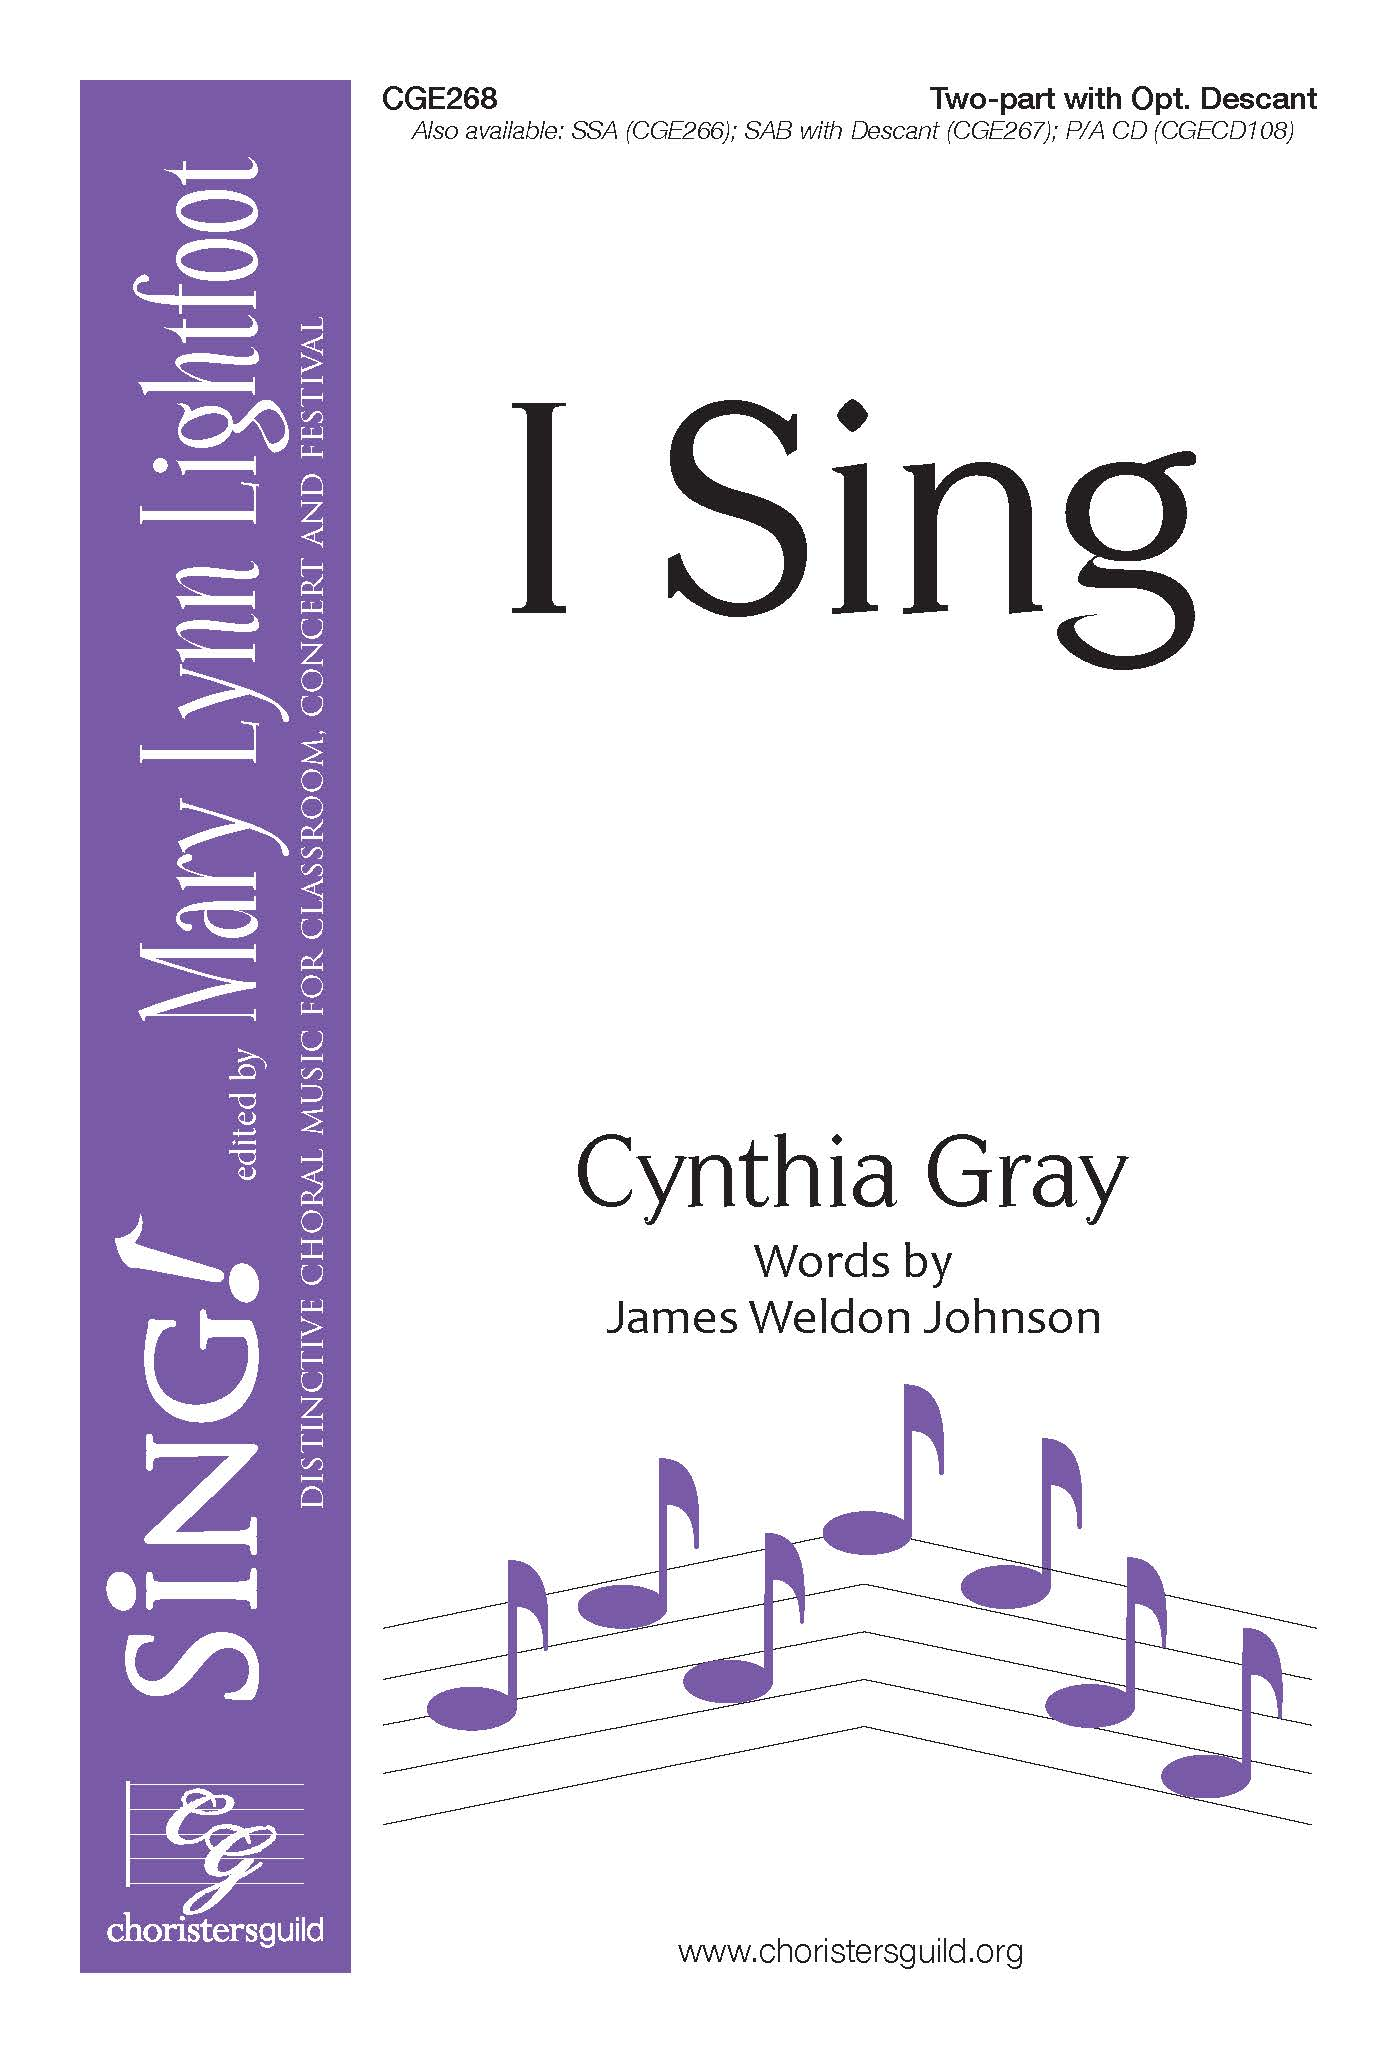 I Sing Two-part